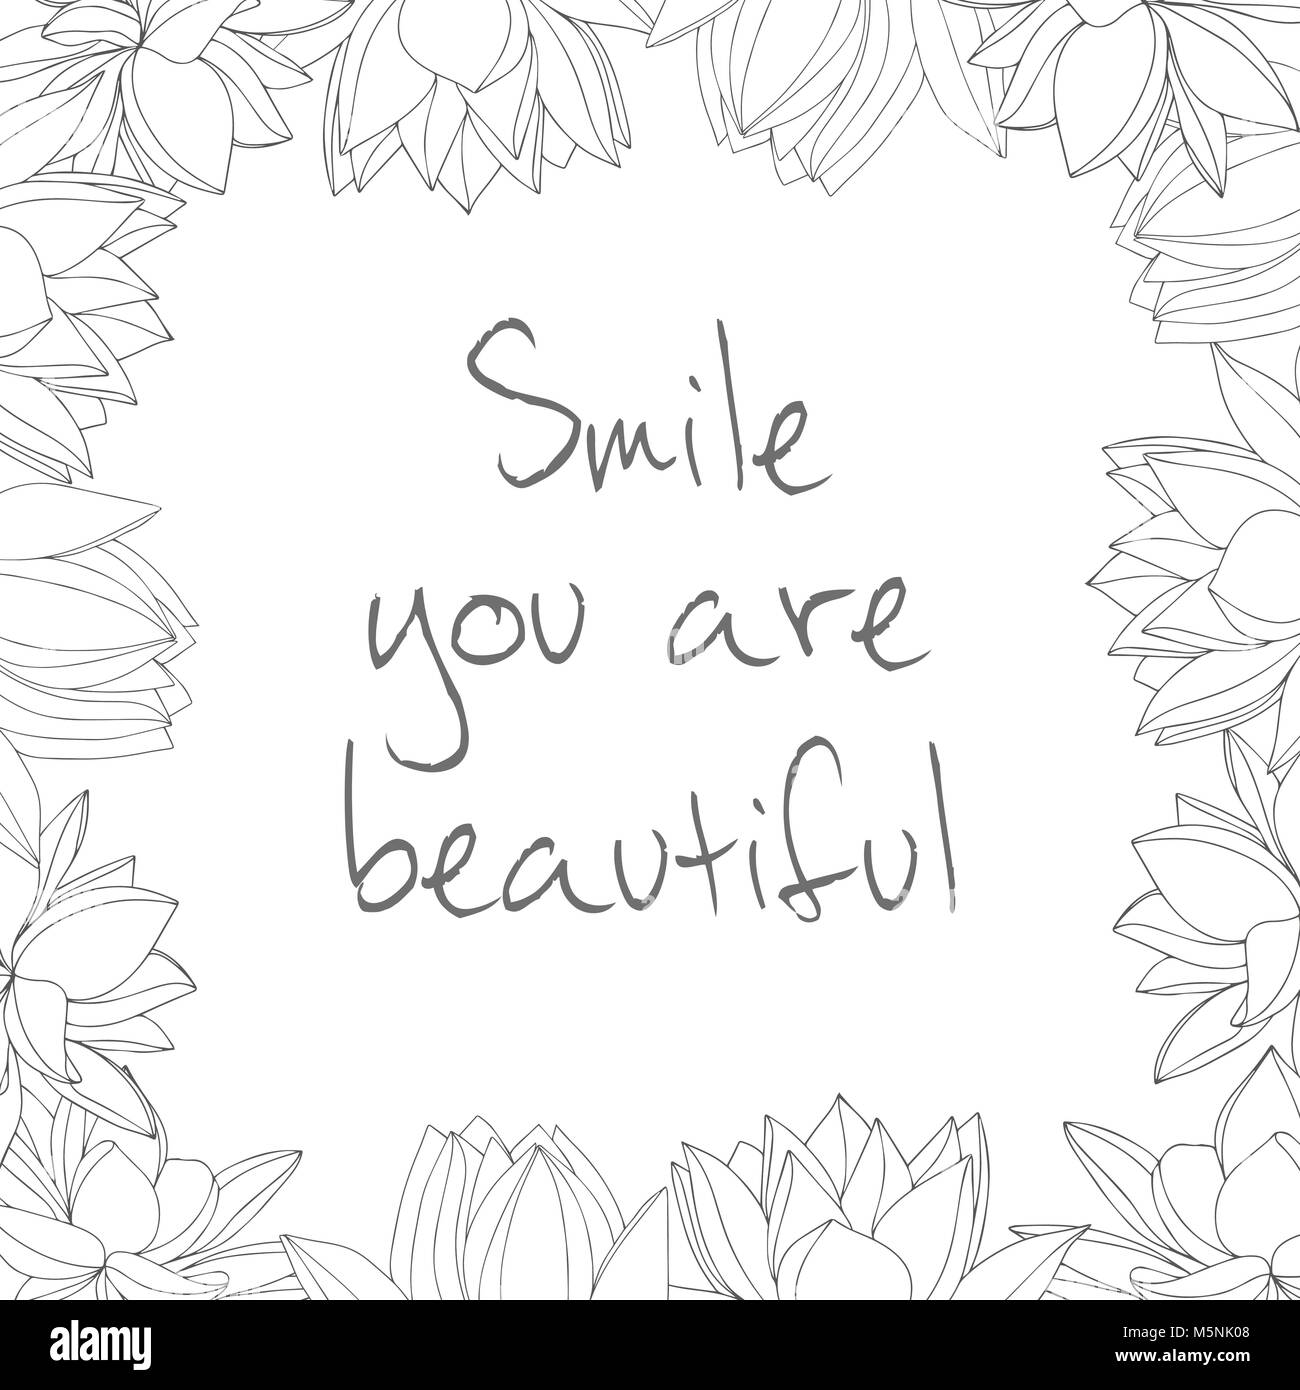 Square Frame With Hand Drawn Flowers Black And White Smile You